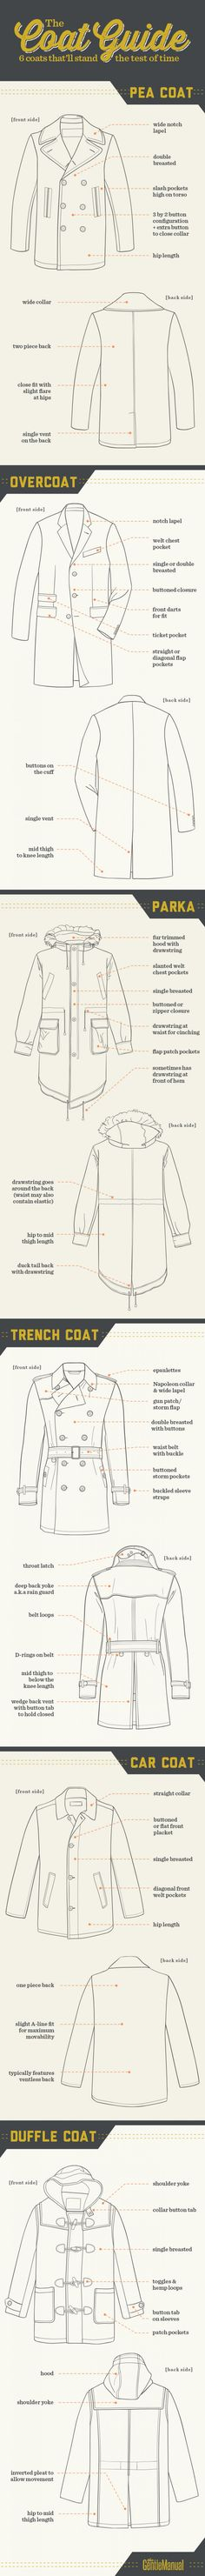 The Coat Guide #infographic #infografía